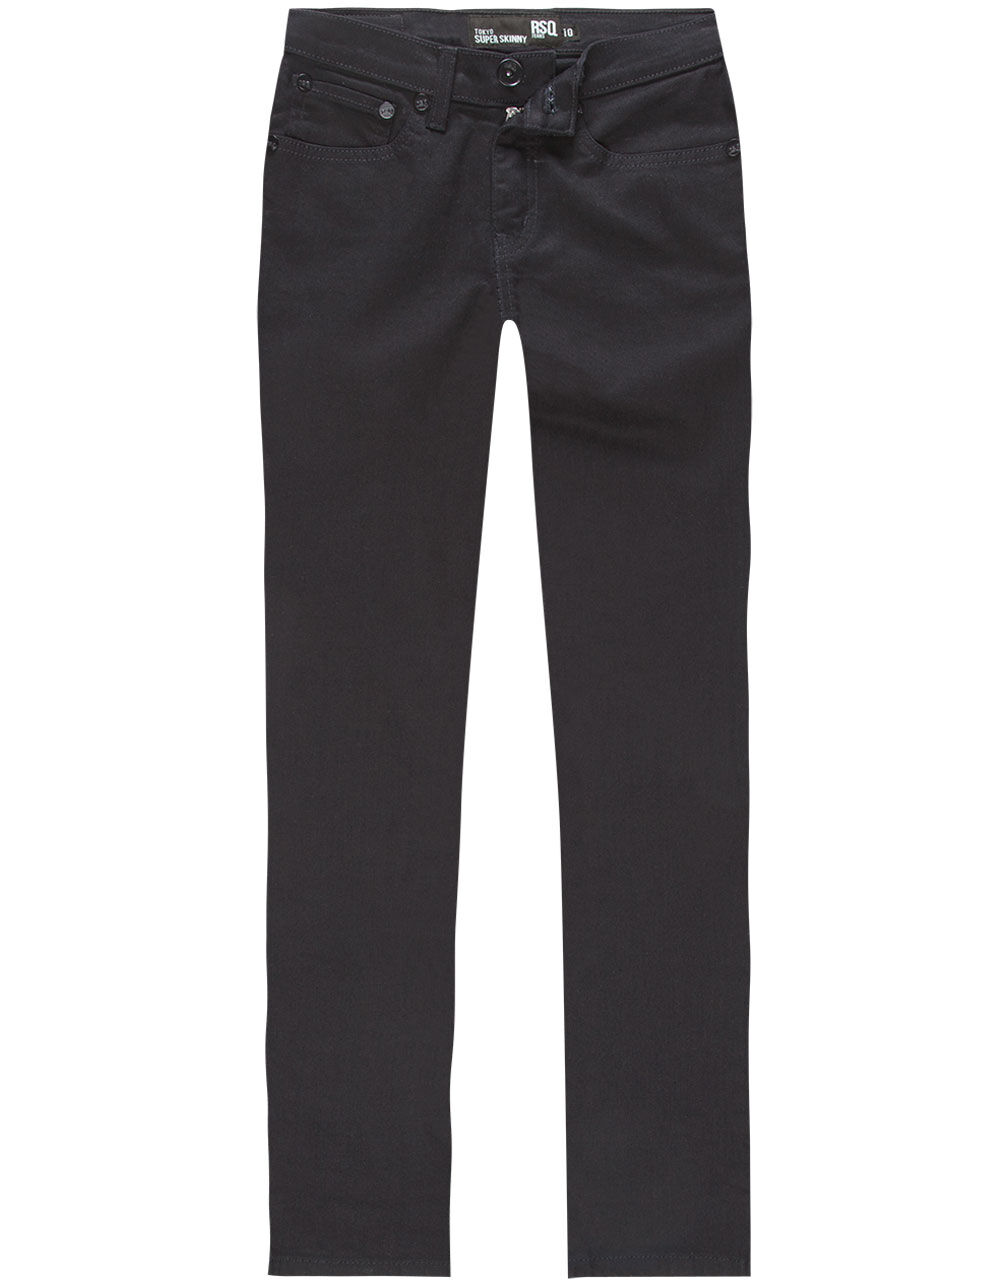 RSQ Tokyo Boys Super Skinny Jeans